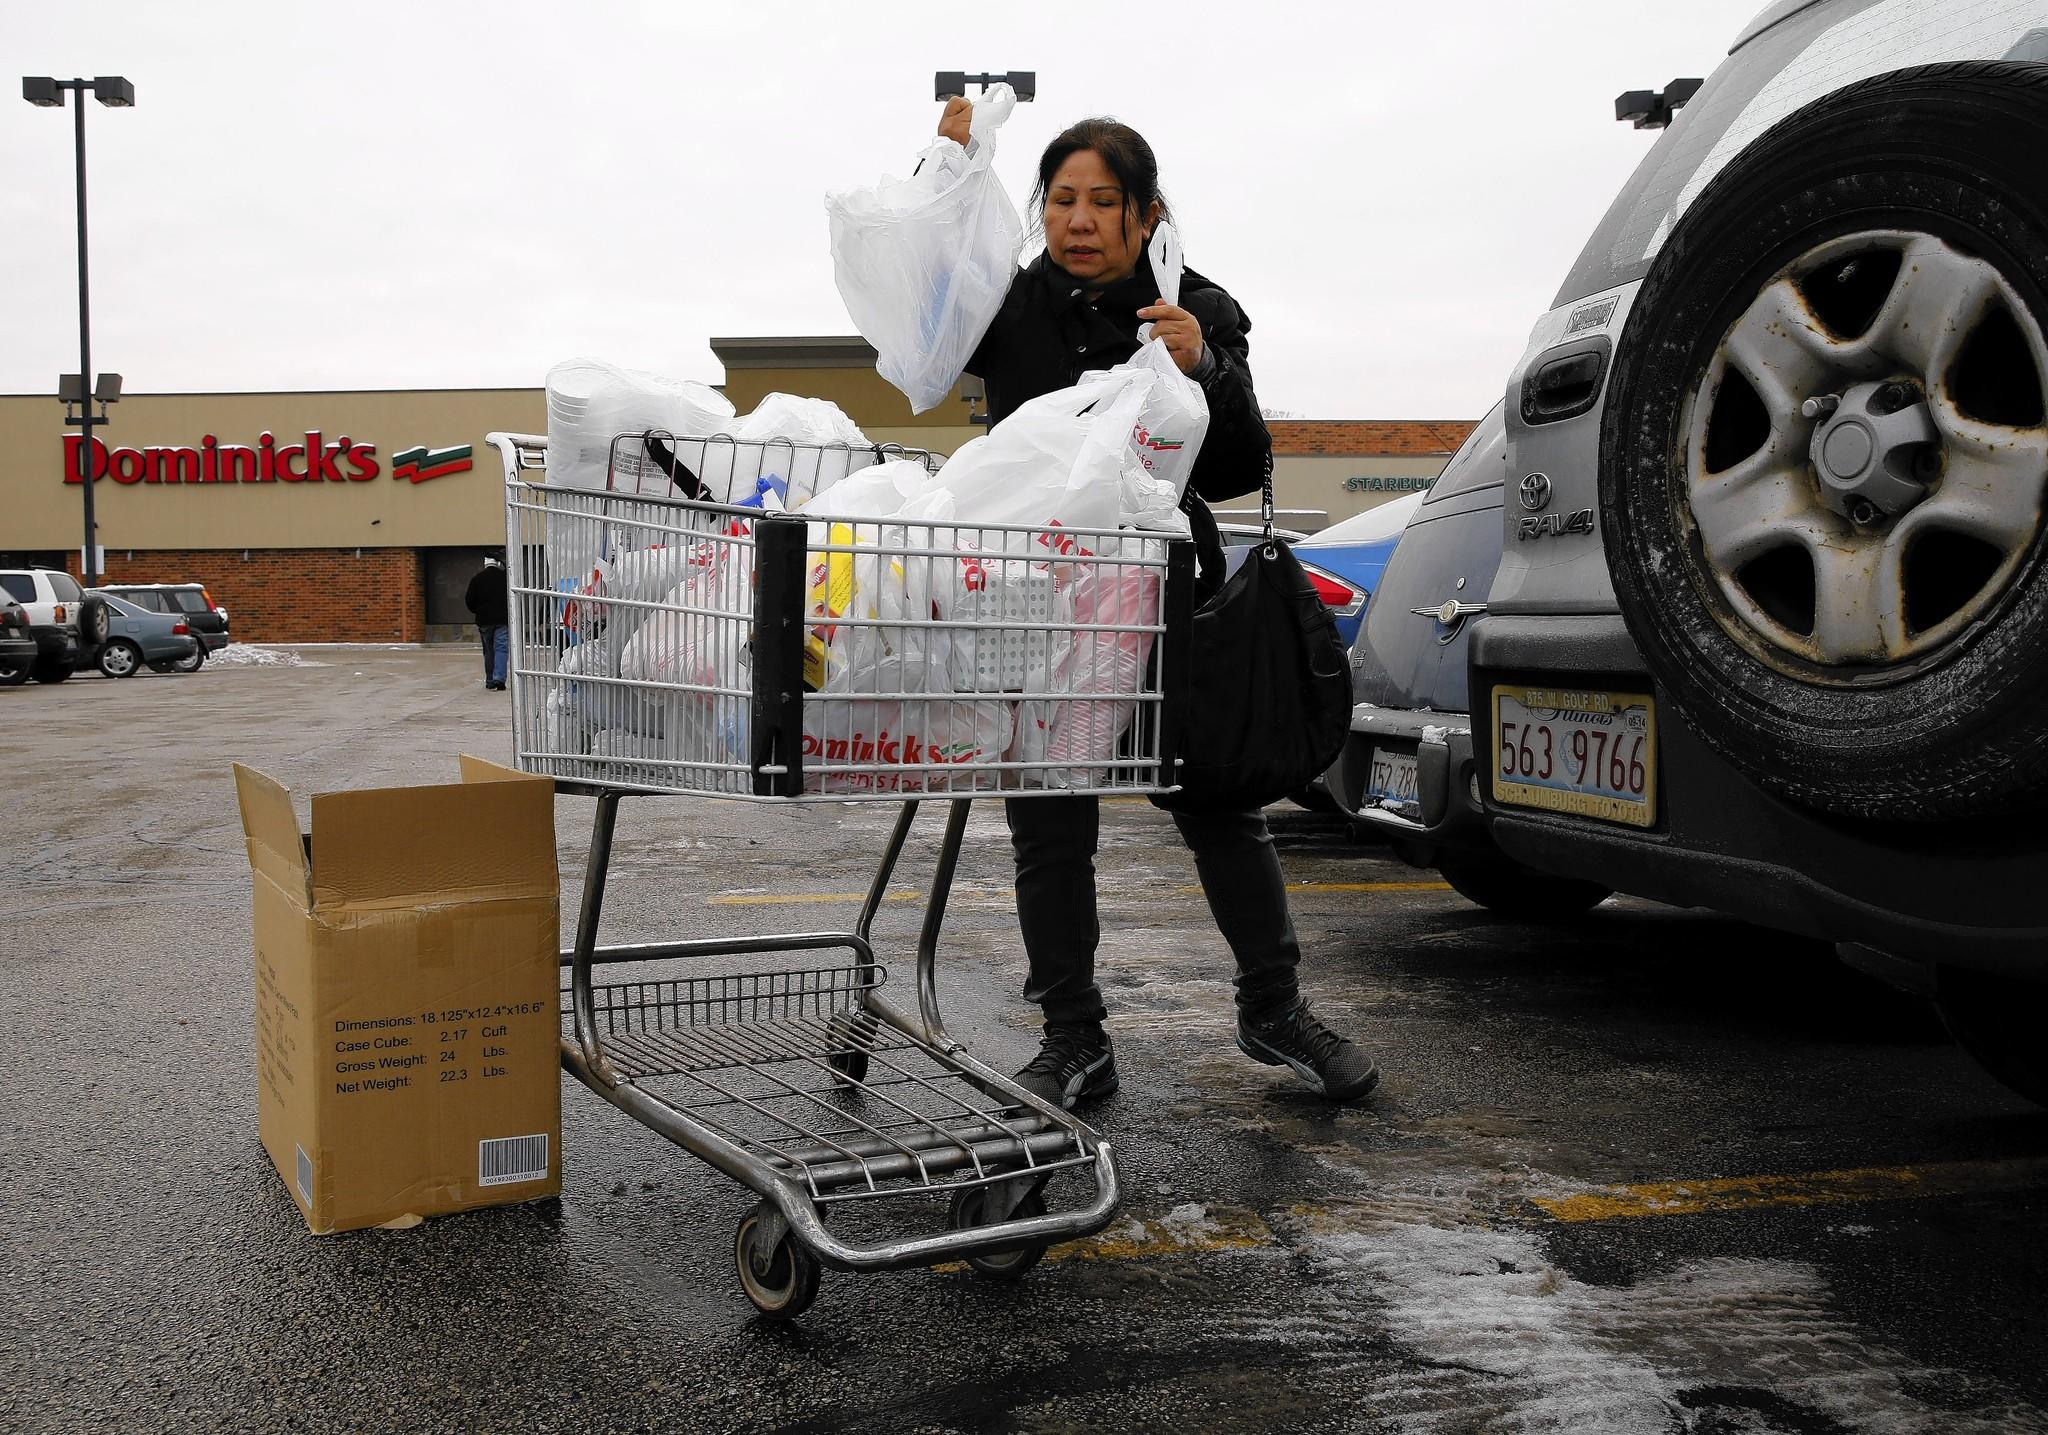 Long Nguyen, 50, of Chicago, loads up her car Dec. 16 after shopping for discounted groceries at a Dominick's store that is closing at Damen and Ridge avenues on the city's North Side.